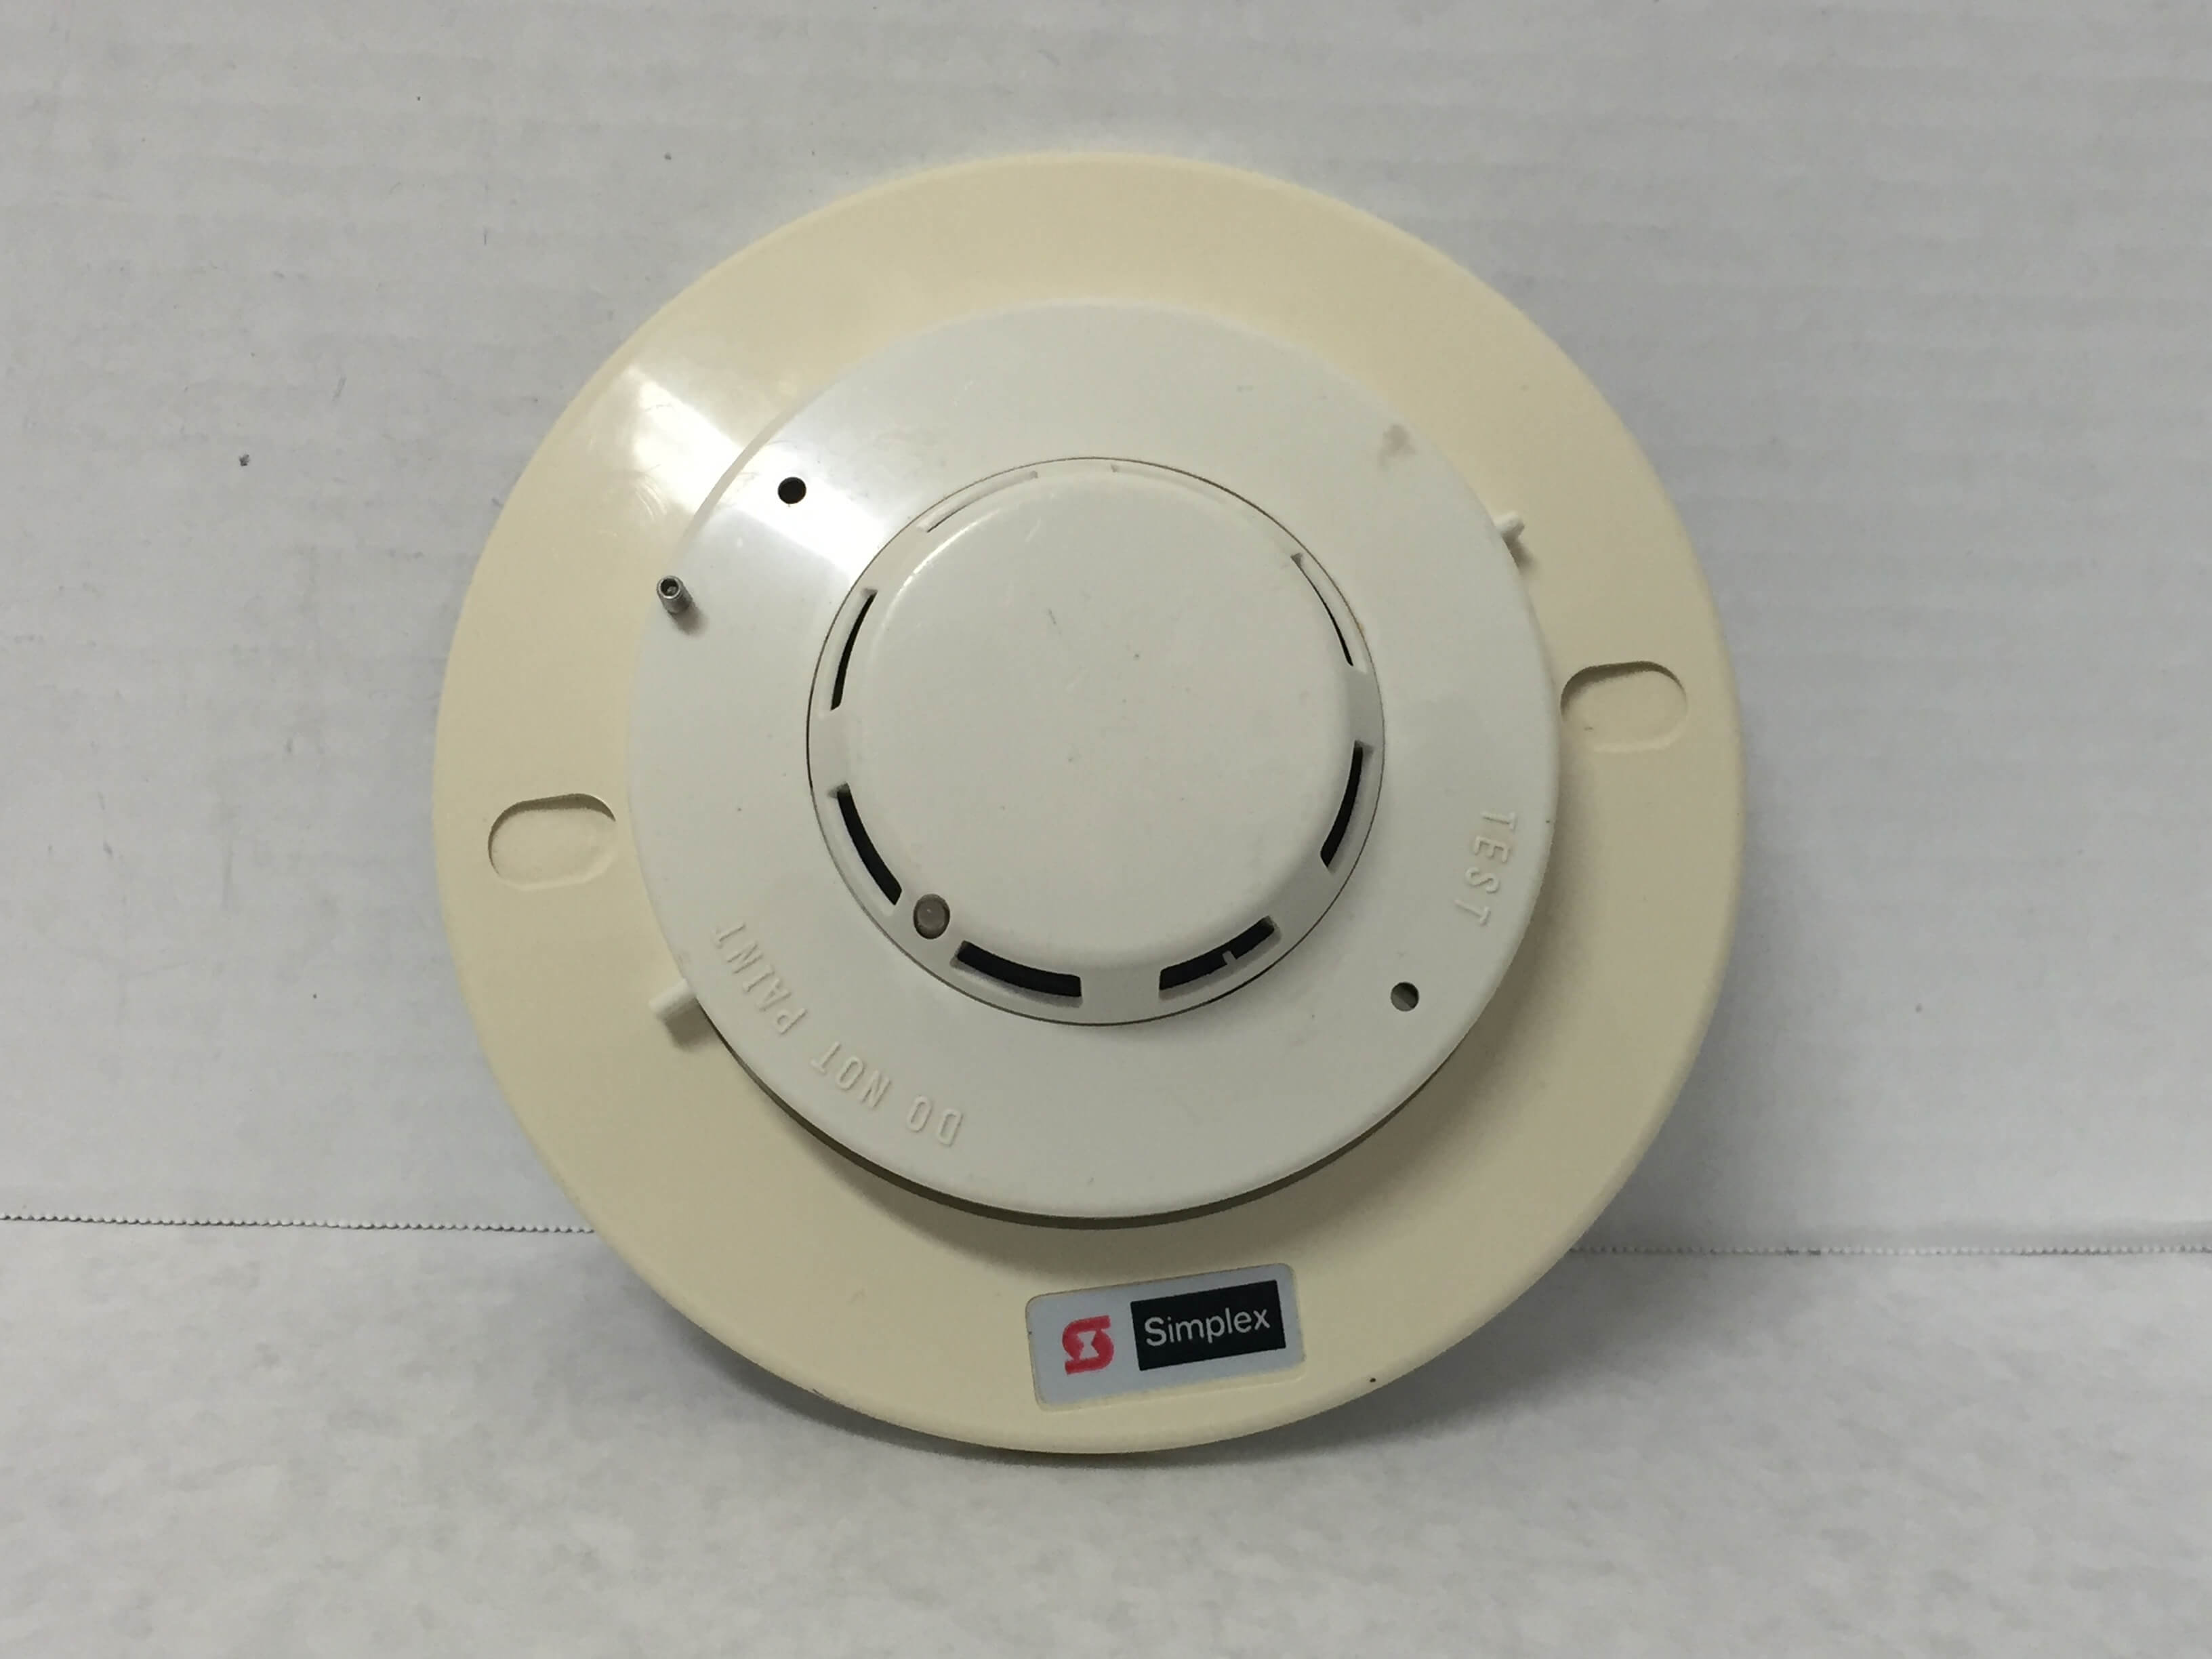 4 wire photoelectric smoke detector rib cage bone diagram simplex 2908 9201 firealarms tv jjinc24 u8ol0 39s fire